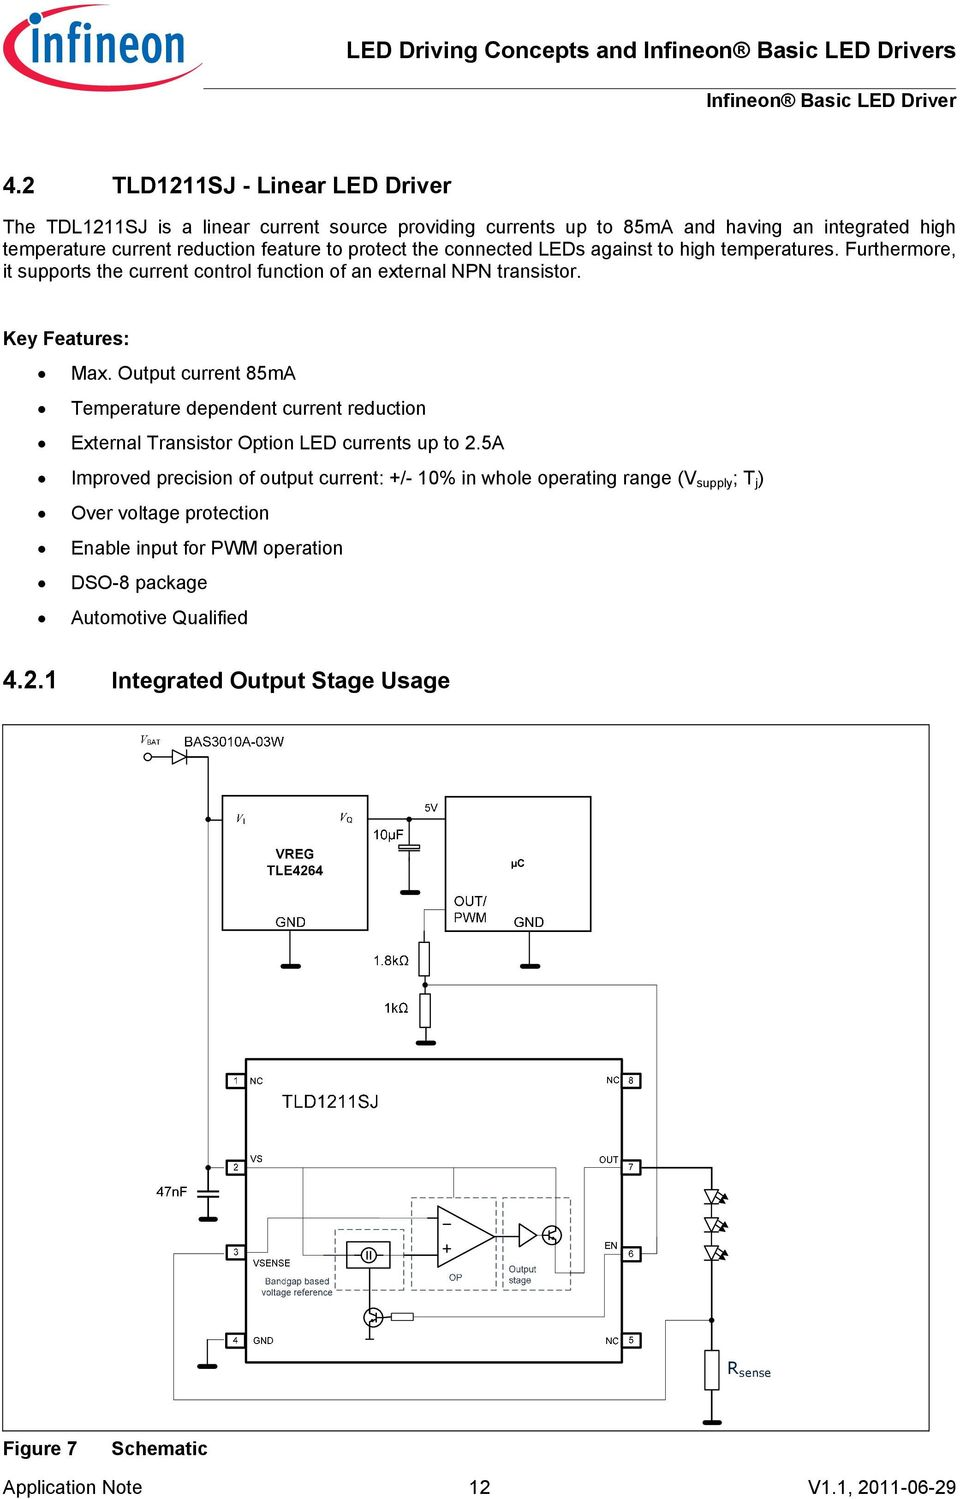 Body Power H Hopfgartner Pdf Figure 2 A Simple Transistor Circuit To Drive Led Connected Leds Against High Temperatures Furthermore It Supports The Current Control Function Of